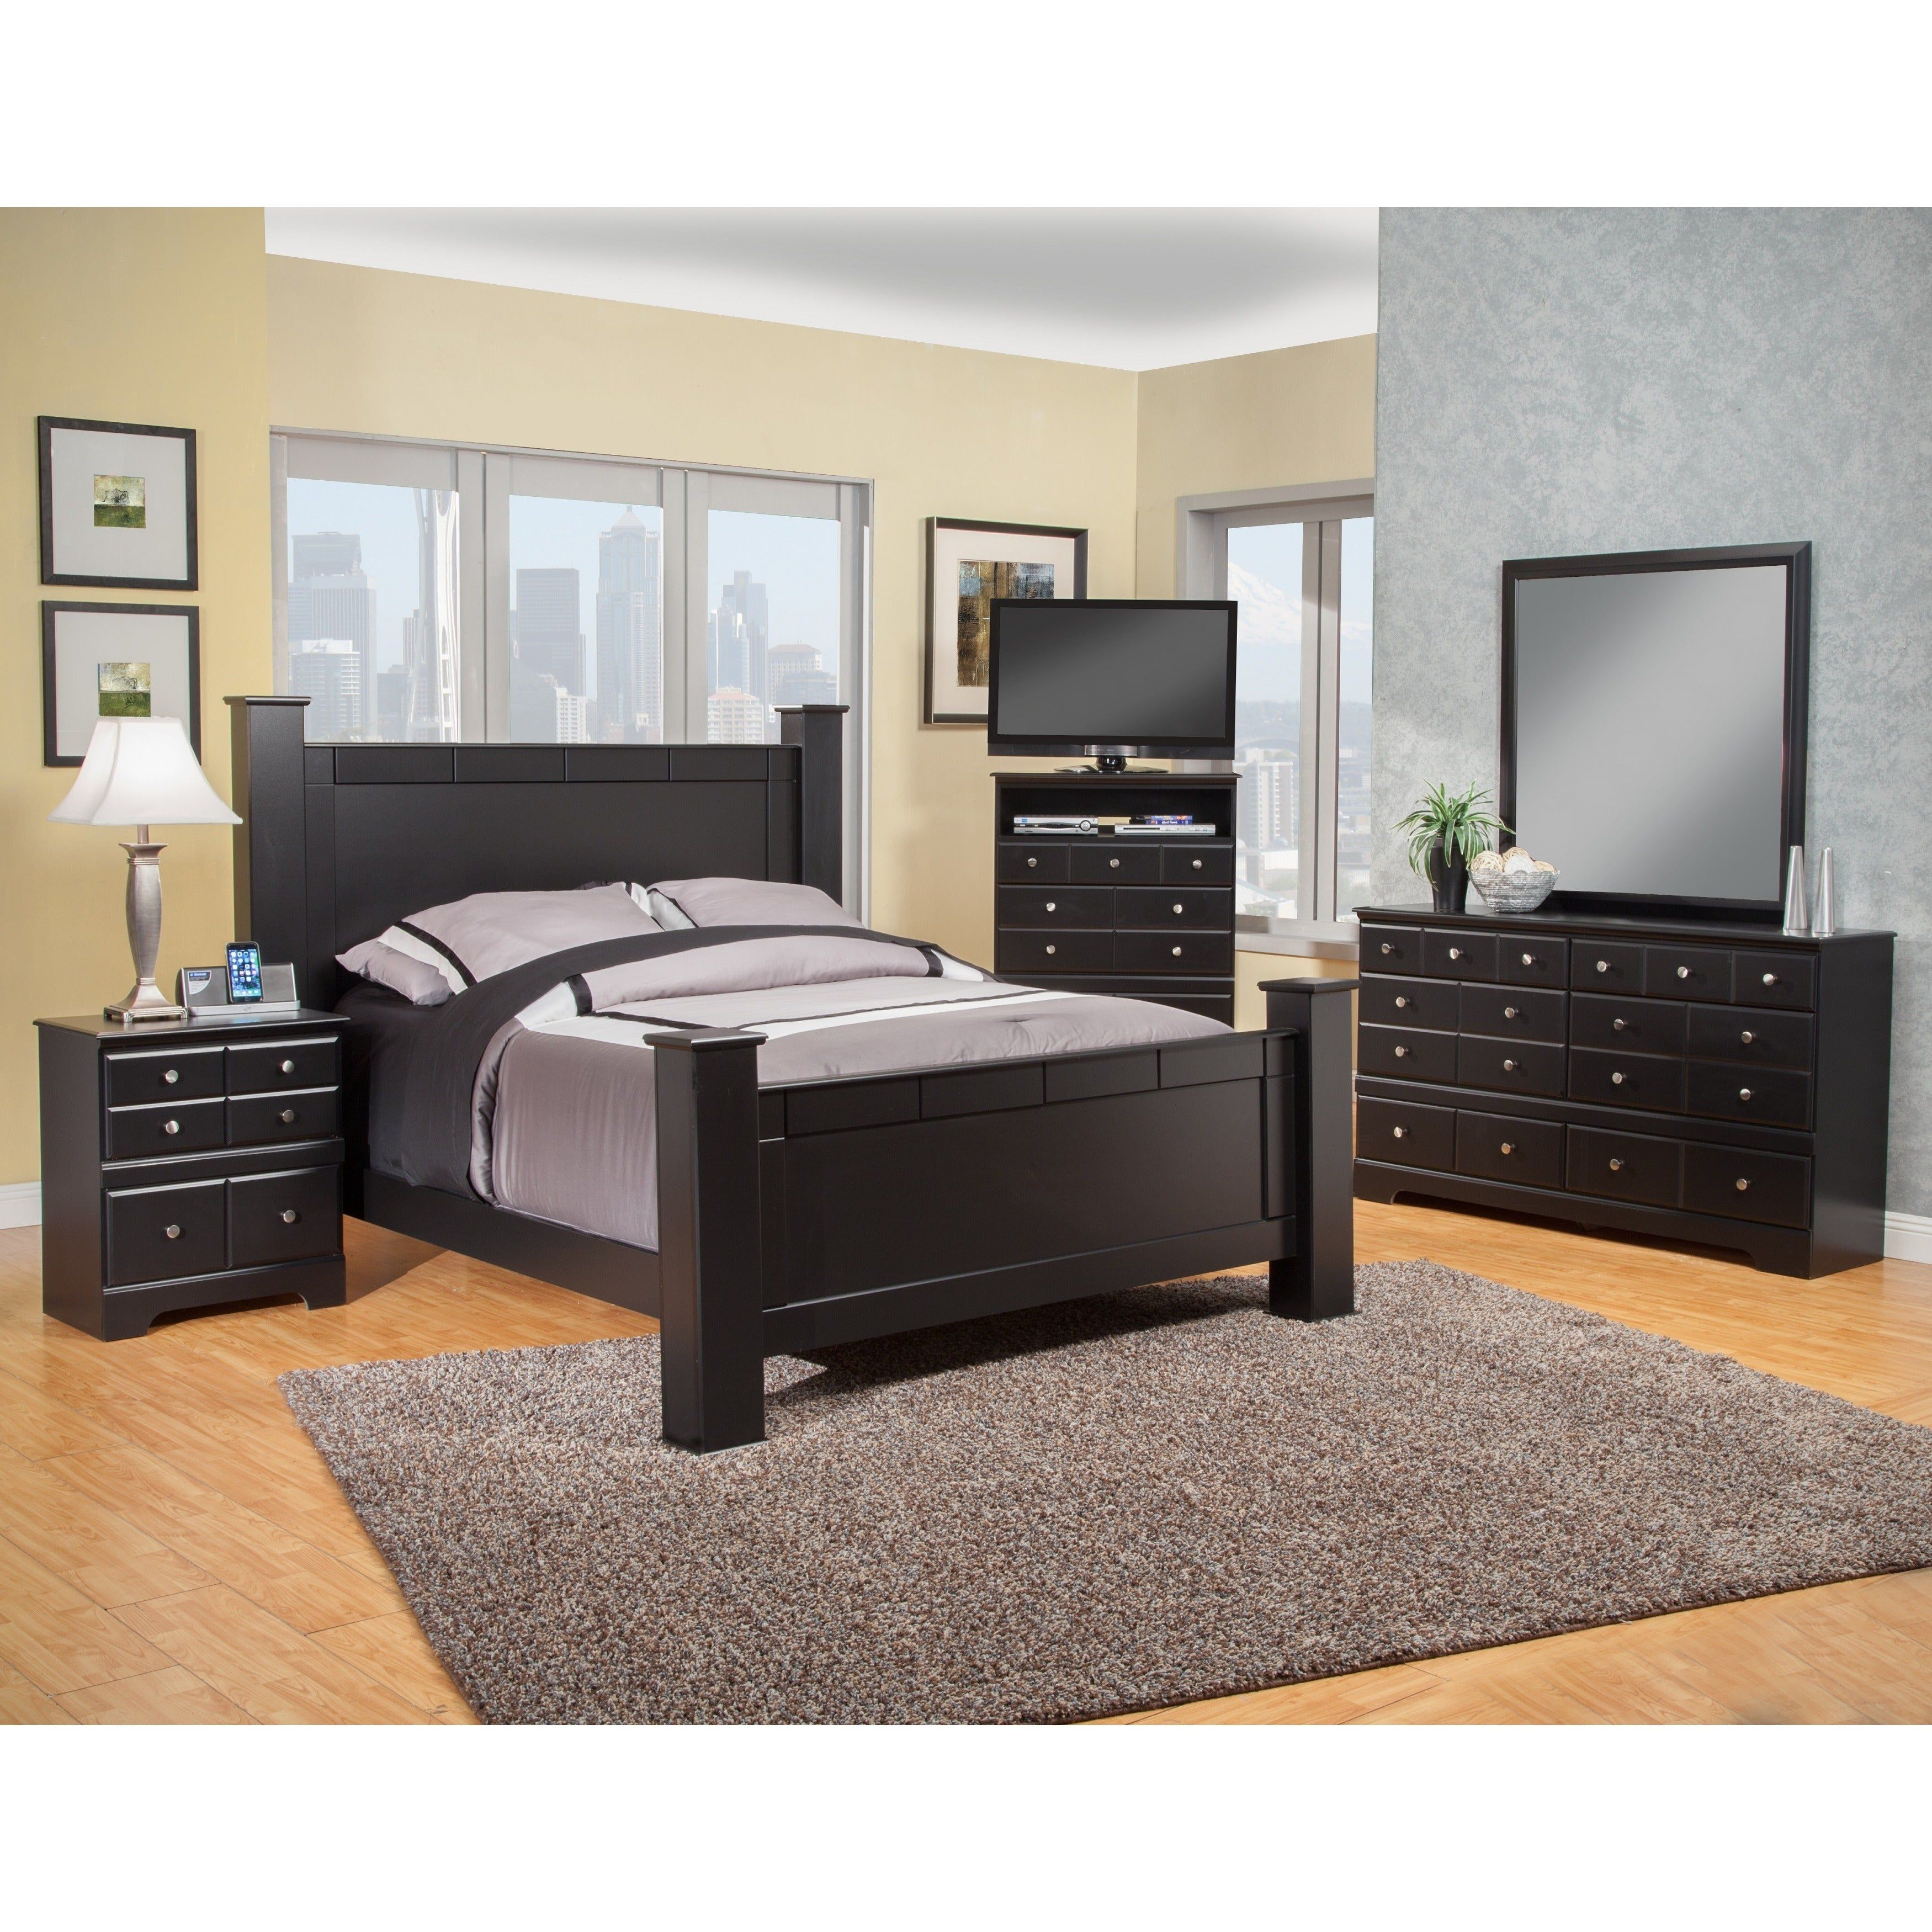 Get This 11 Clever Tricks Of How To Build Overstock Bedroom Furniture Sets For You 11 C In 2020 Bedroom Furniture Sets Cheap Bedroom Furniture Large Bedroom Furniture